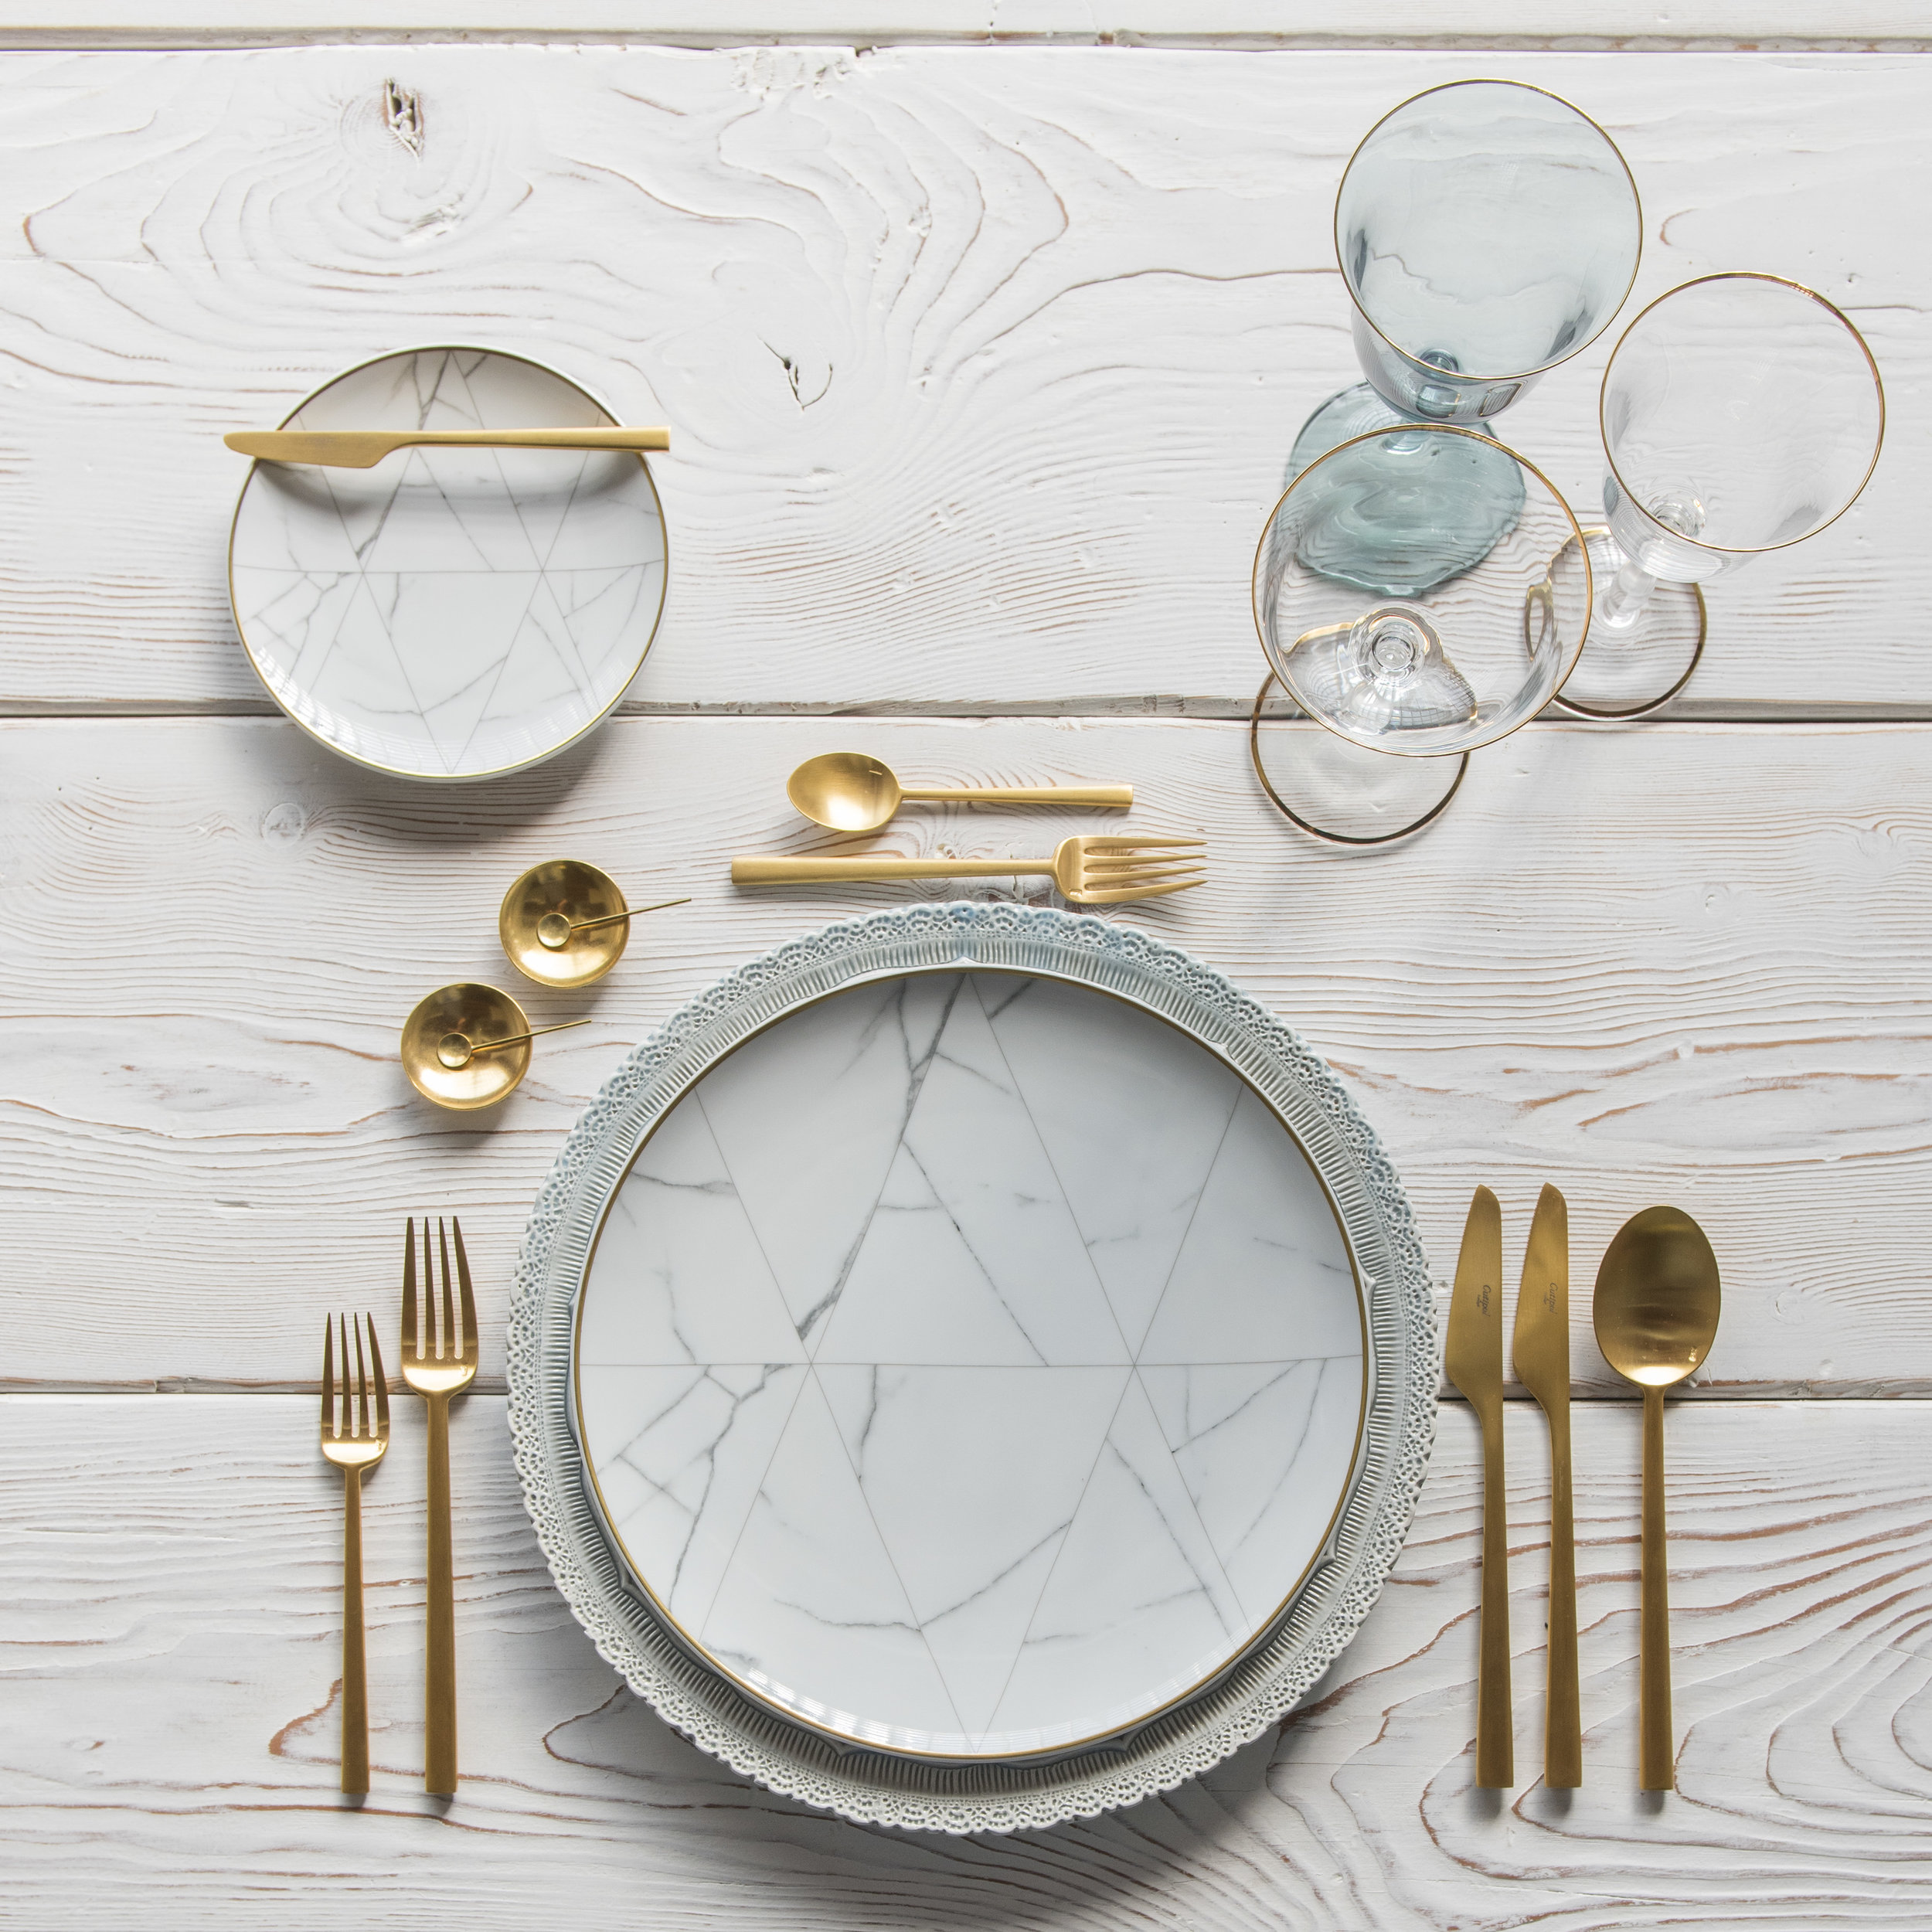 RENT: Lace Chargers in Dusty Blue + Carrara Dinnerware + Rondo Flatware in Brushed 24k Gold + Chloe 24k Gold Rimmed Stemware + Chloe 24k Gold Rimmed Goblet in Agave + 14k Gold Salt Cellars + Tiny Gold Spoons   SHOP: Carrara Dinnerware + Rondo Flatware in Brushed 24k Gold + Chloe 24k Gold Rimmed Stemware + 14k Gold Salt Cellars + Tiny Gold Spoons